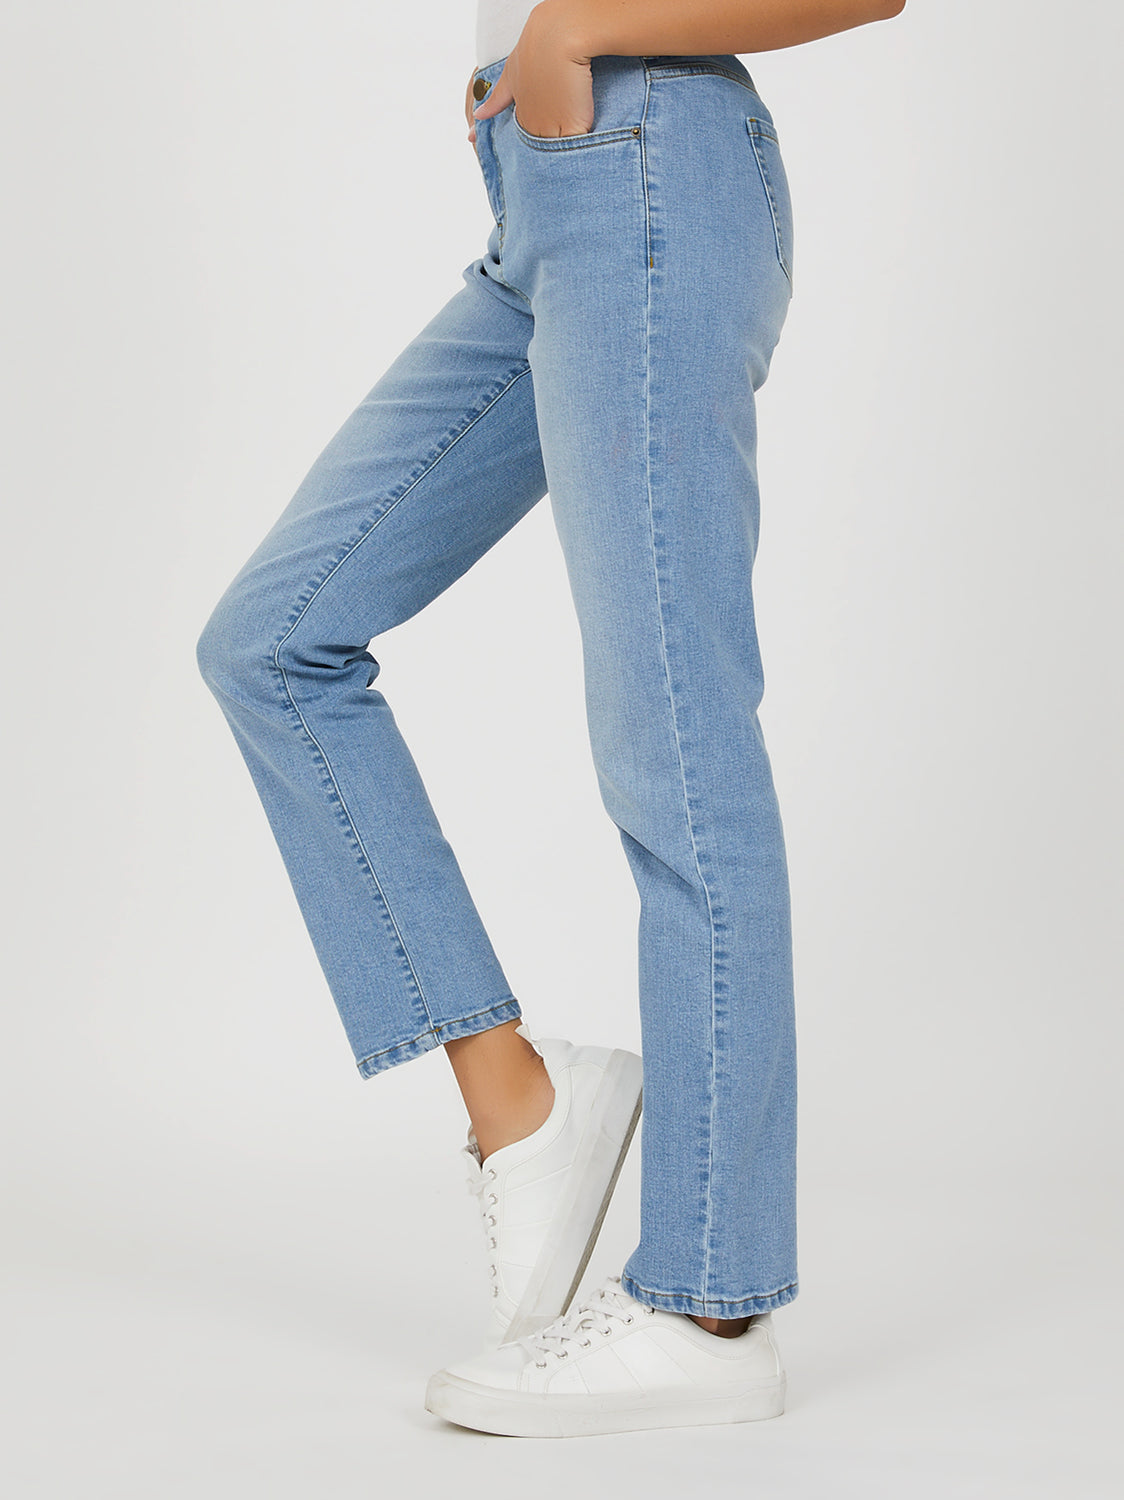 Light Wash Mid-Rise Straight Leg Jeans